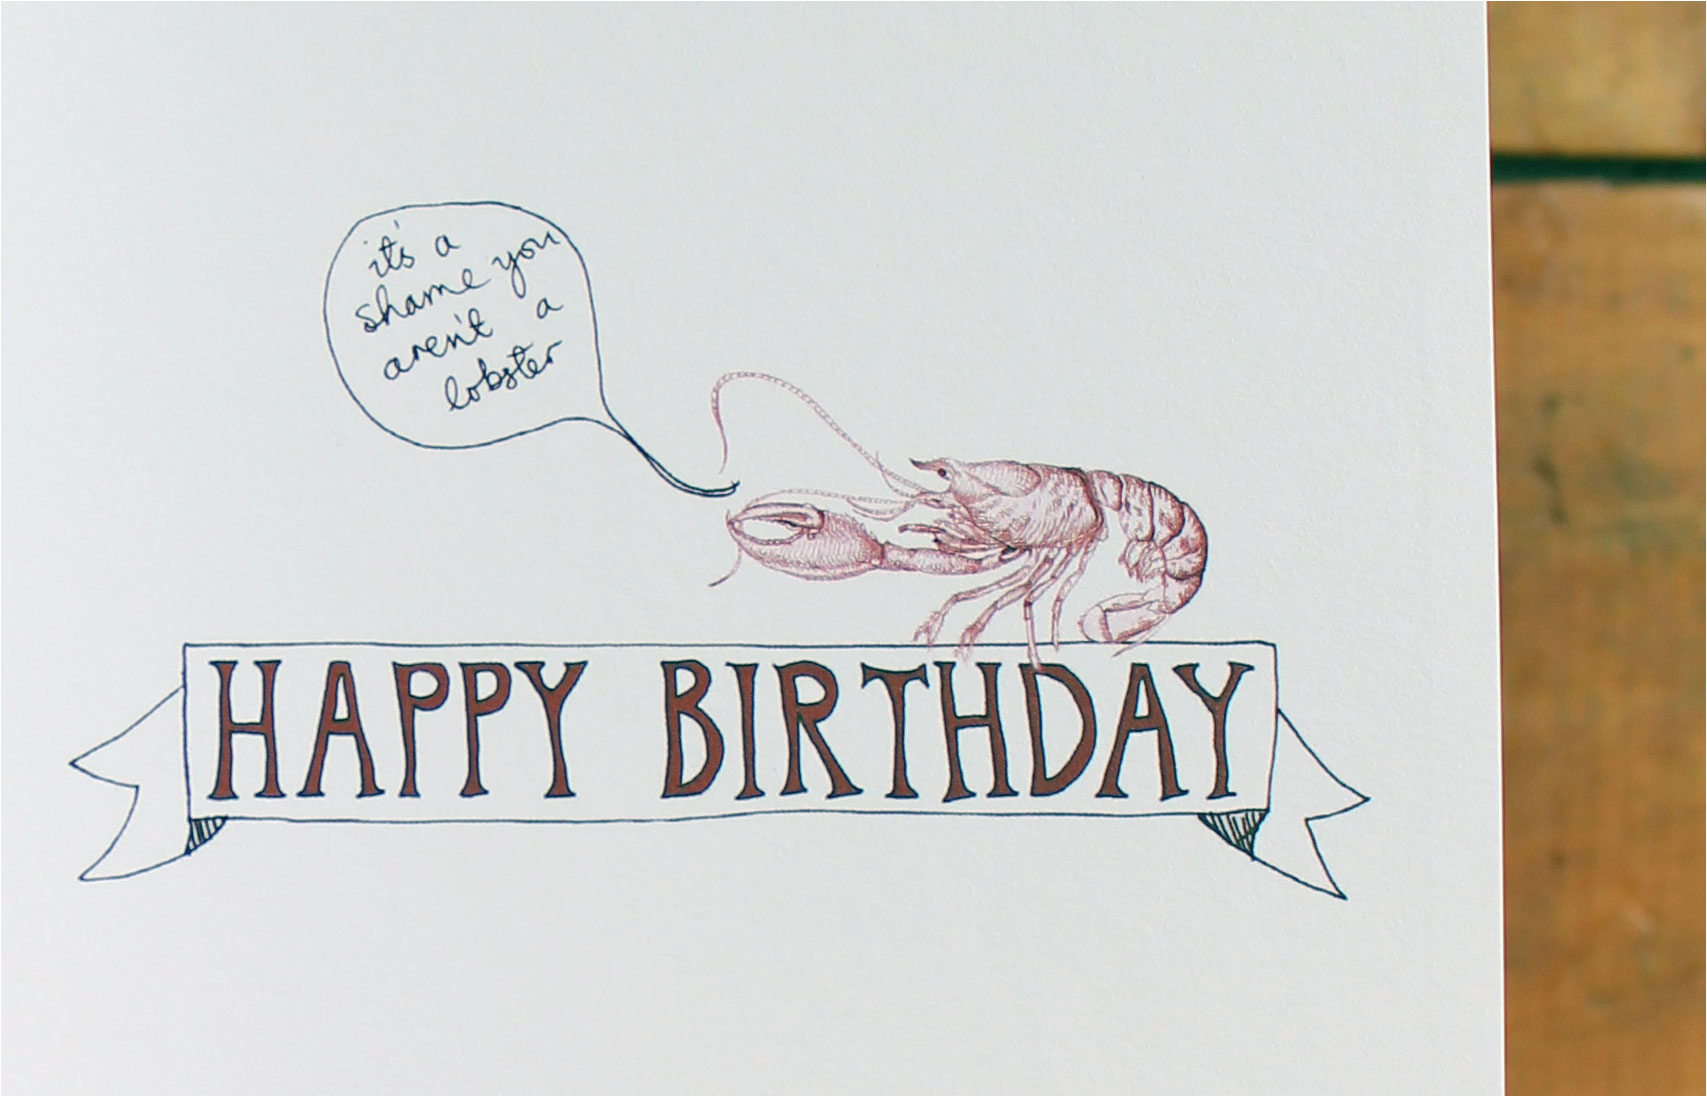 lobsters are immortal a science birthday card we are